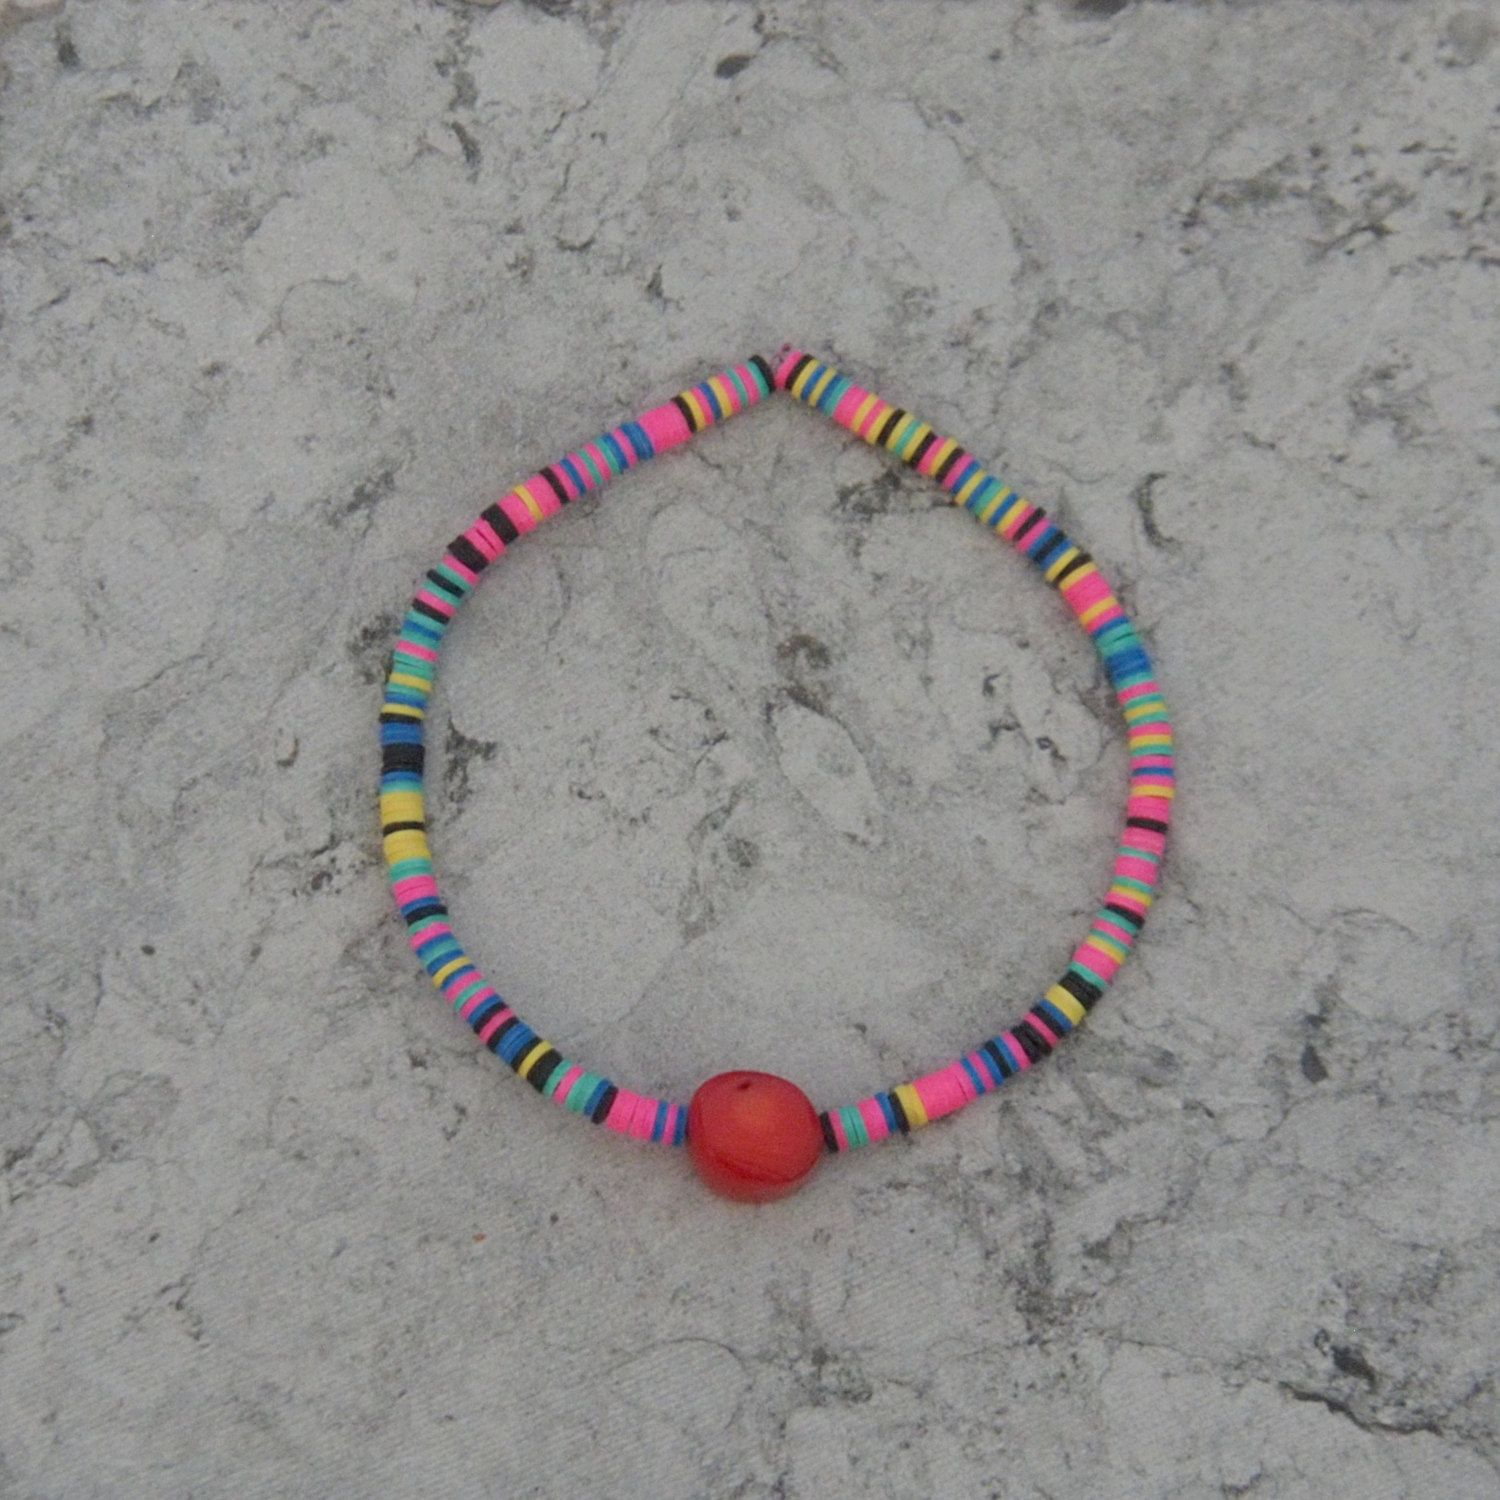 African Pop Bracelet / Multi Mixed Disc Beads / African Vinyl / Tribal Beads / Coral / Pop Art / Neon / Boho / Stacking / Summer / Friends by saltrabbit on Etsy